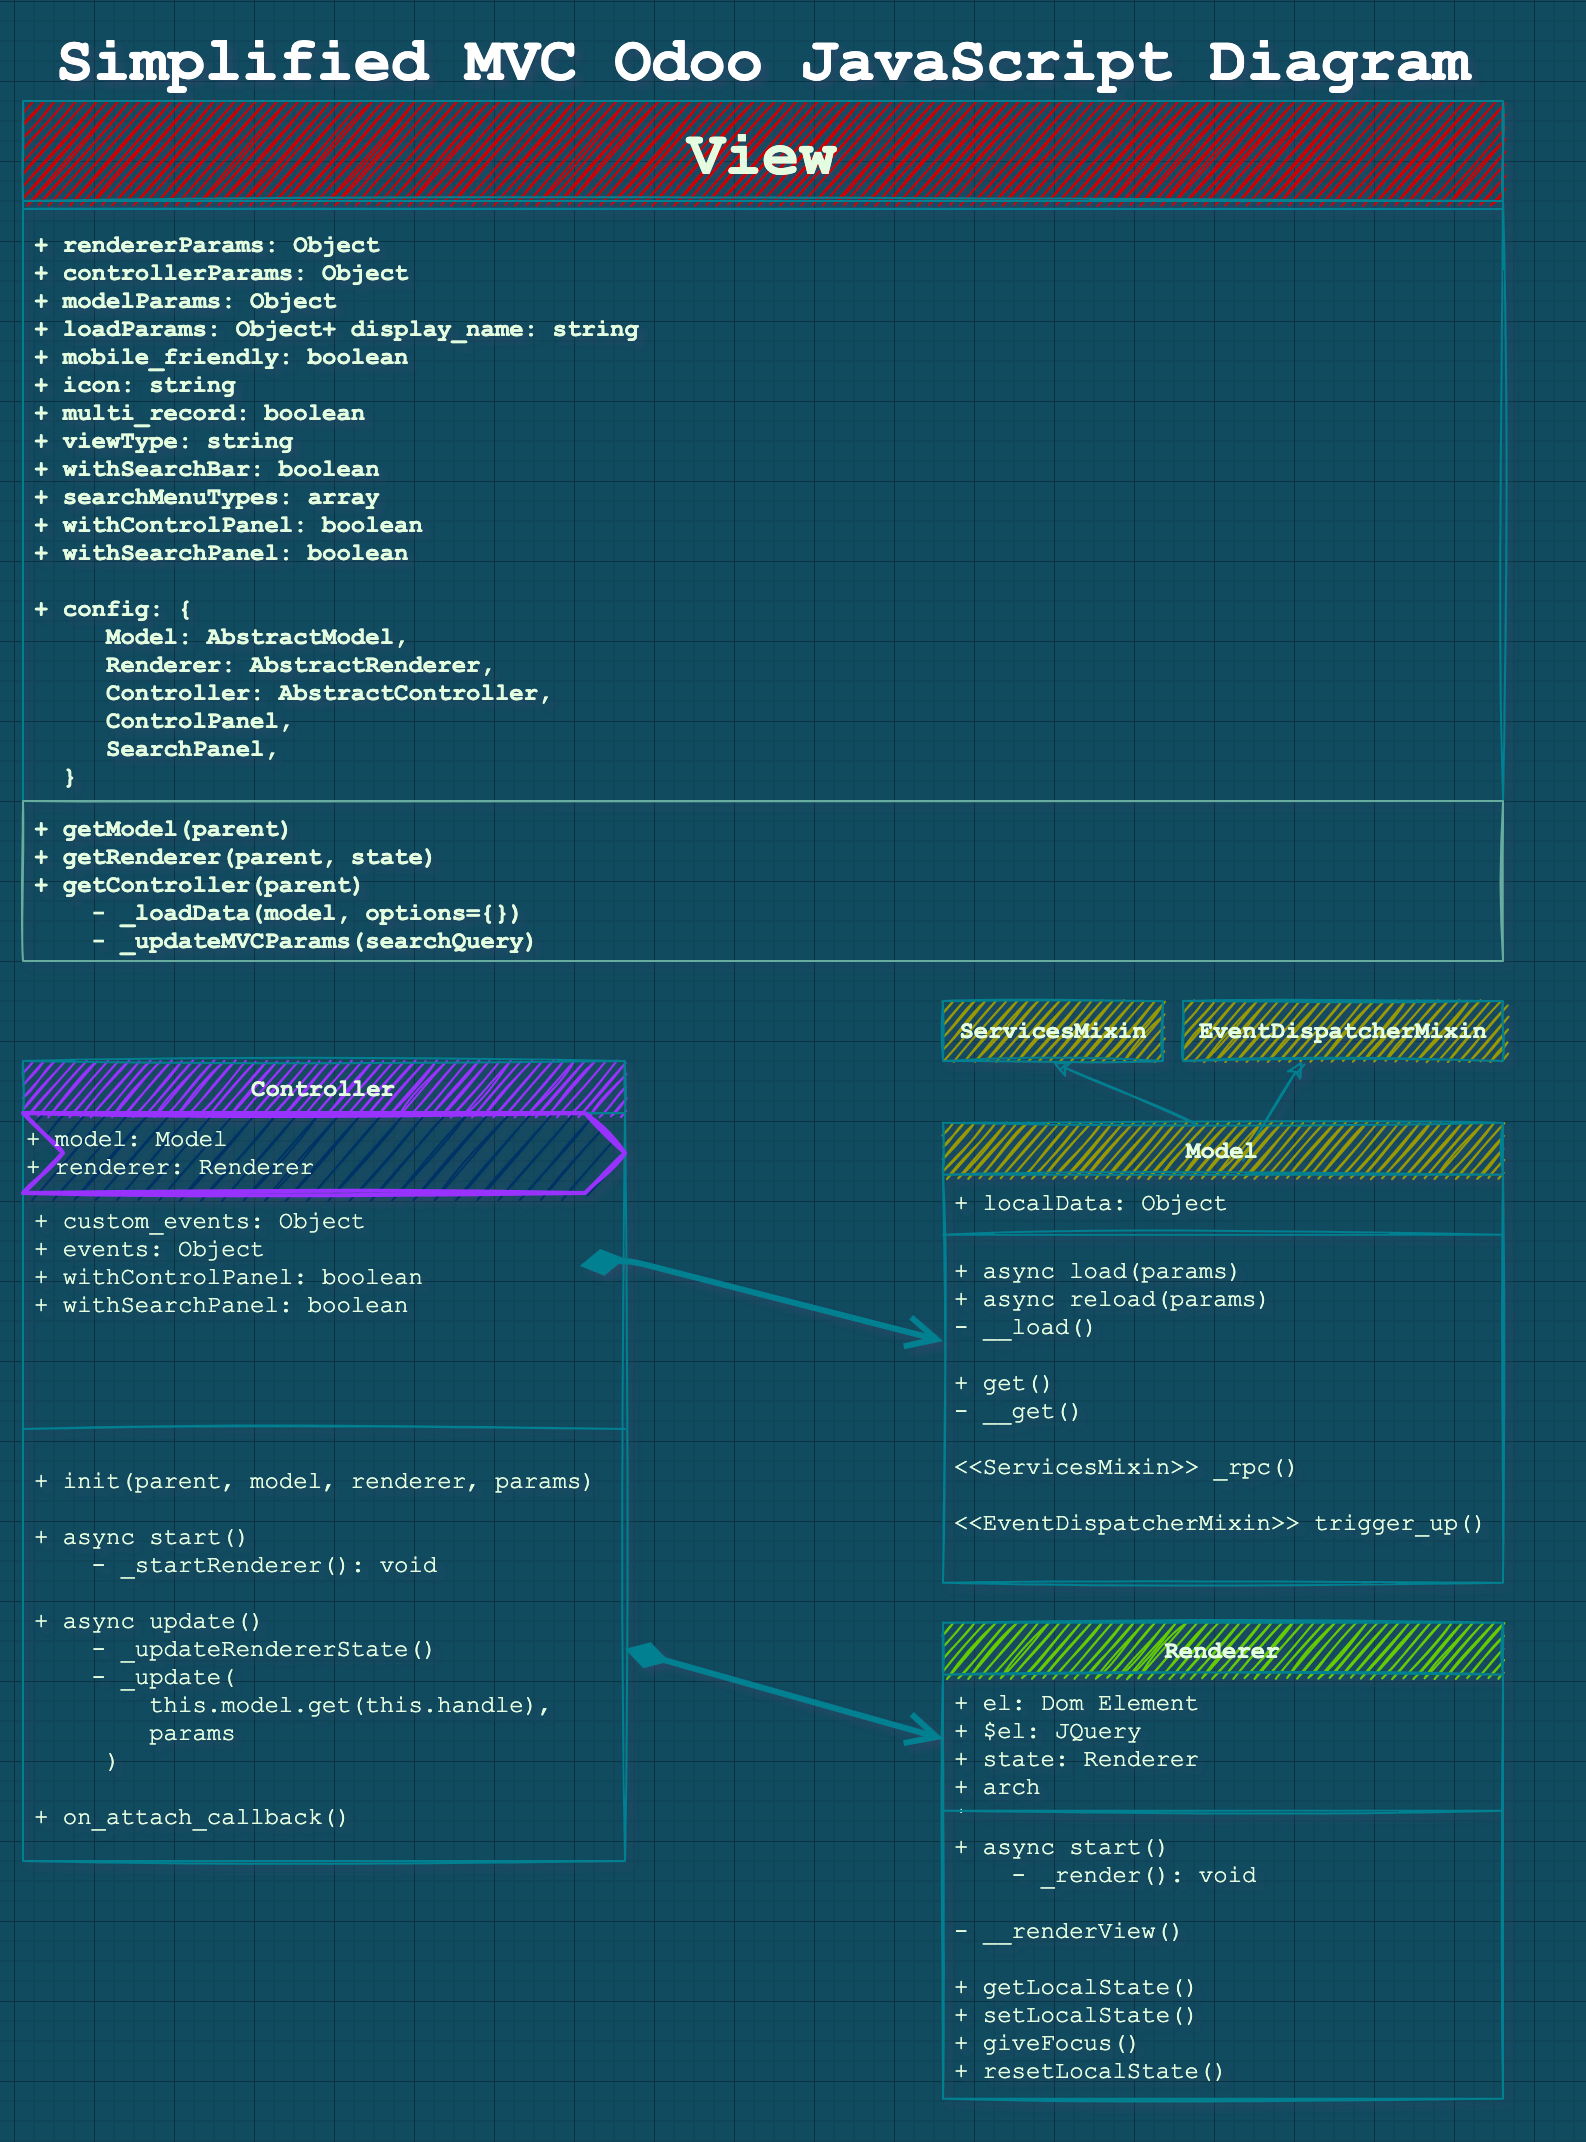 Odoo JavaScript MVC Diagram Overview showing the View, Controller, Model and the Renderer.